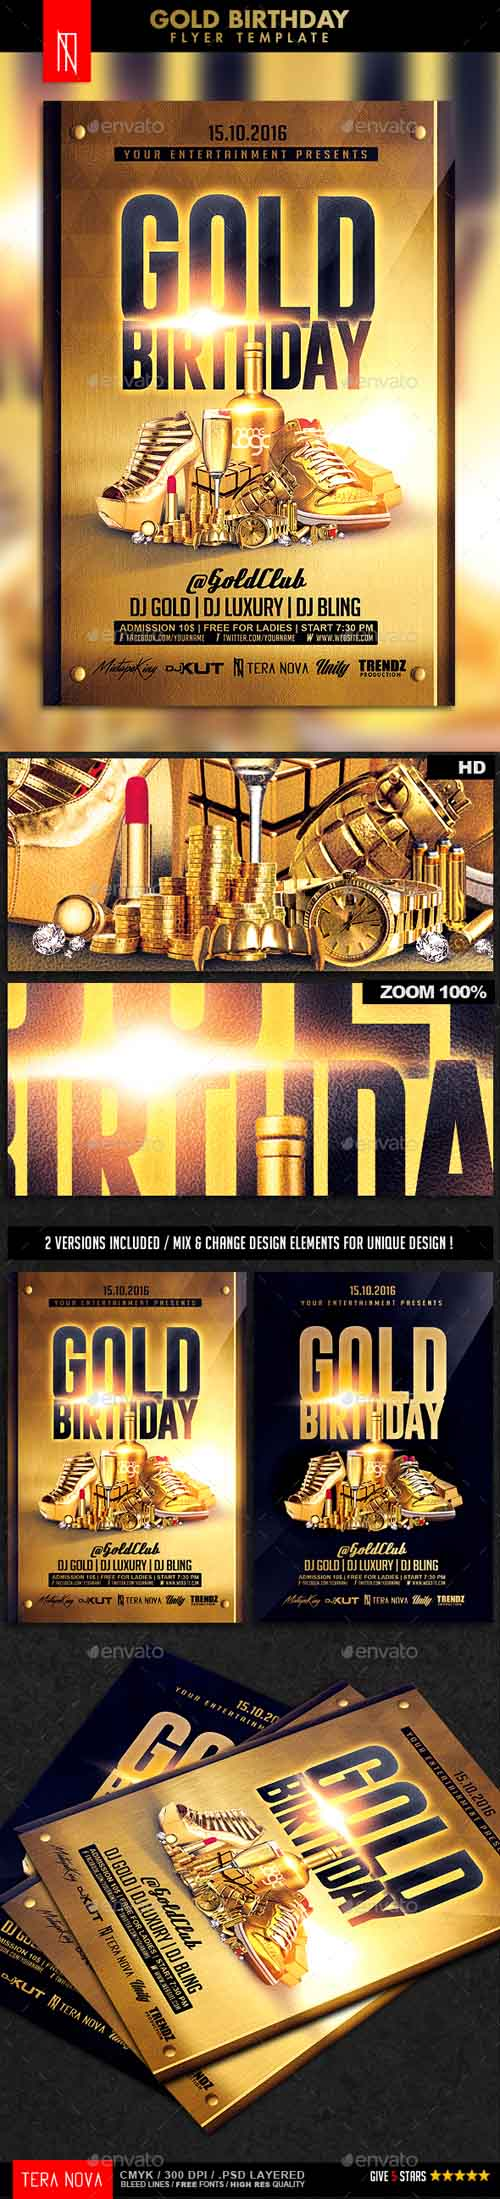 Gold Birthday Bling Bling Flyer Template 14551136